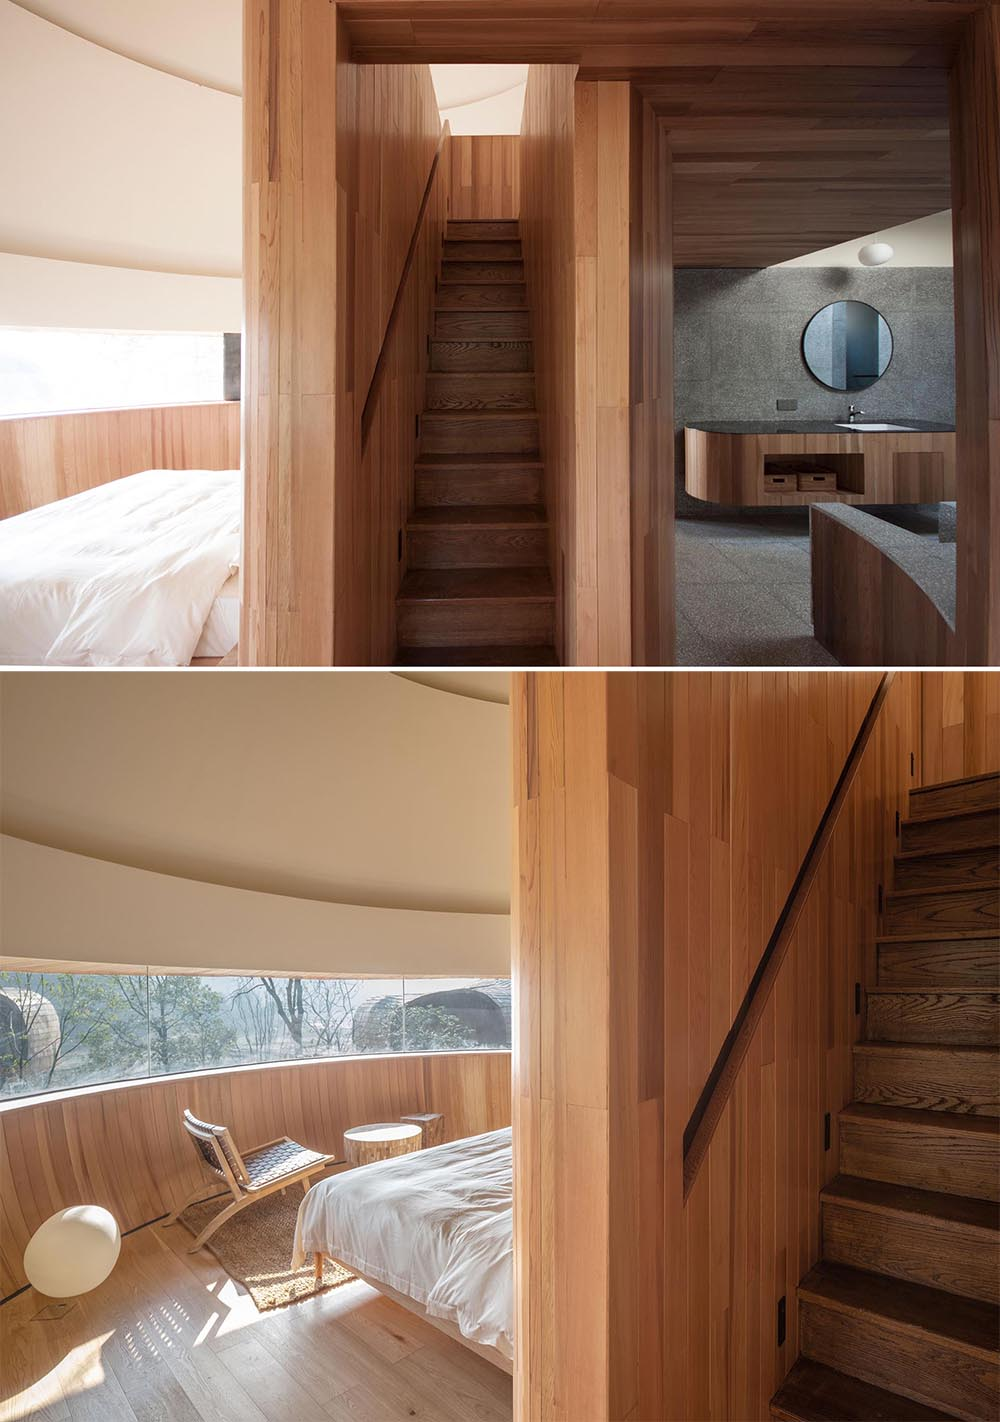 A modern cabin with a narrow staircase and built-in handrail.